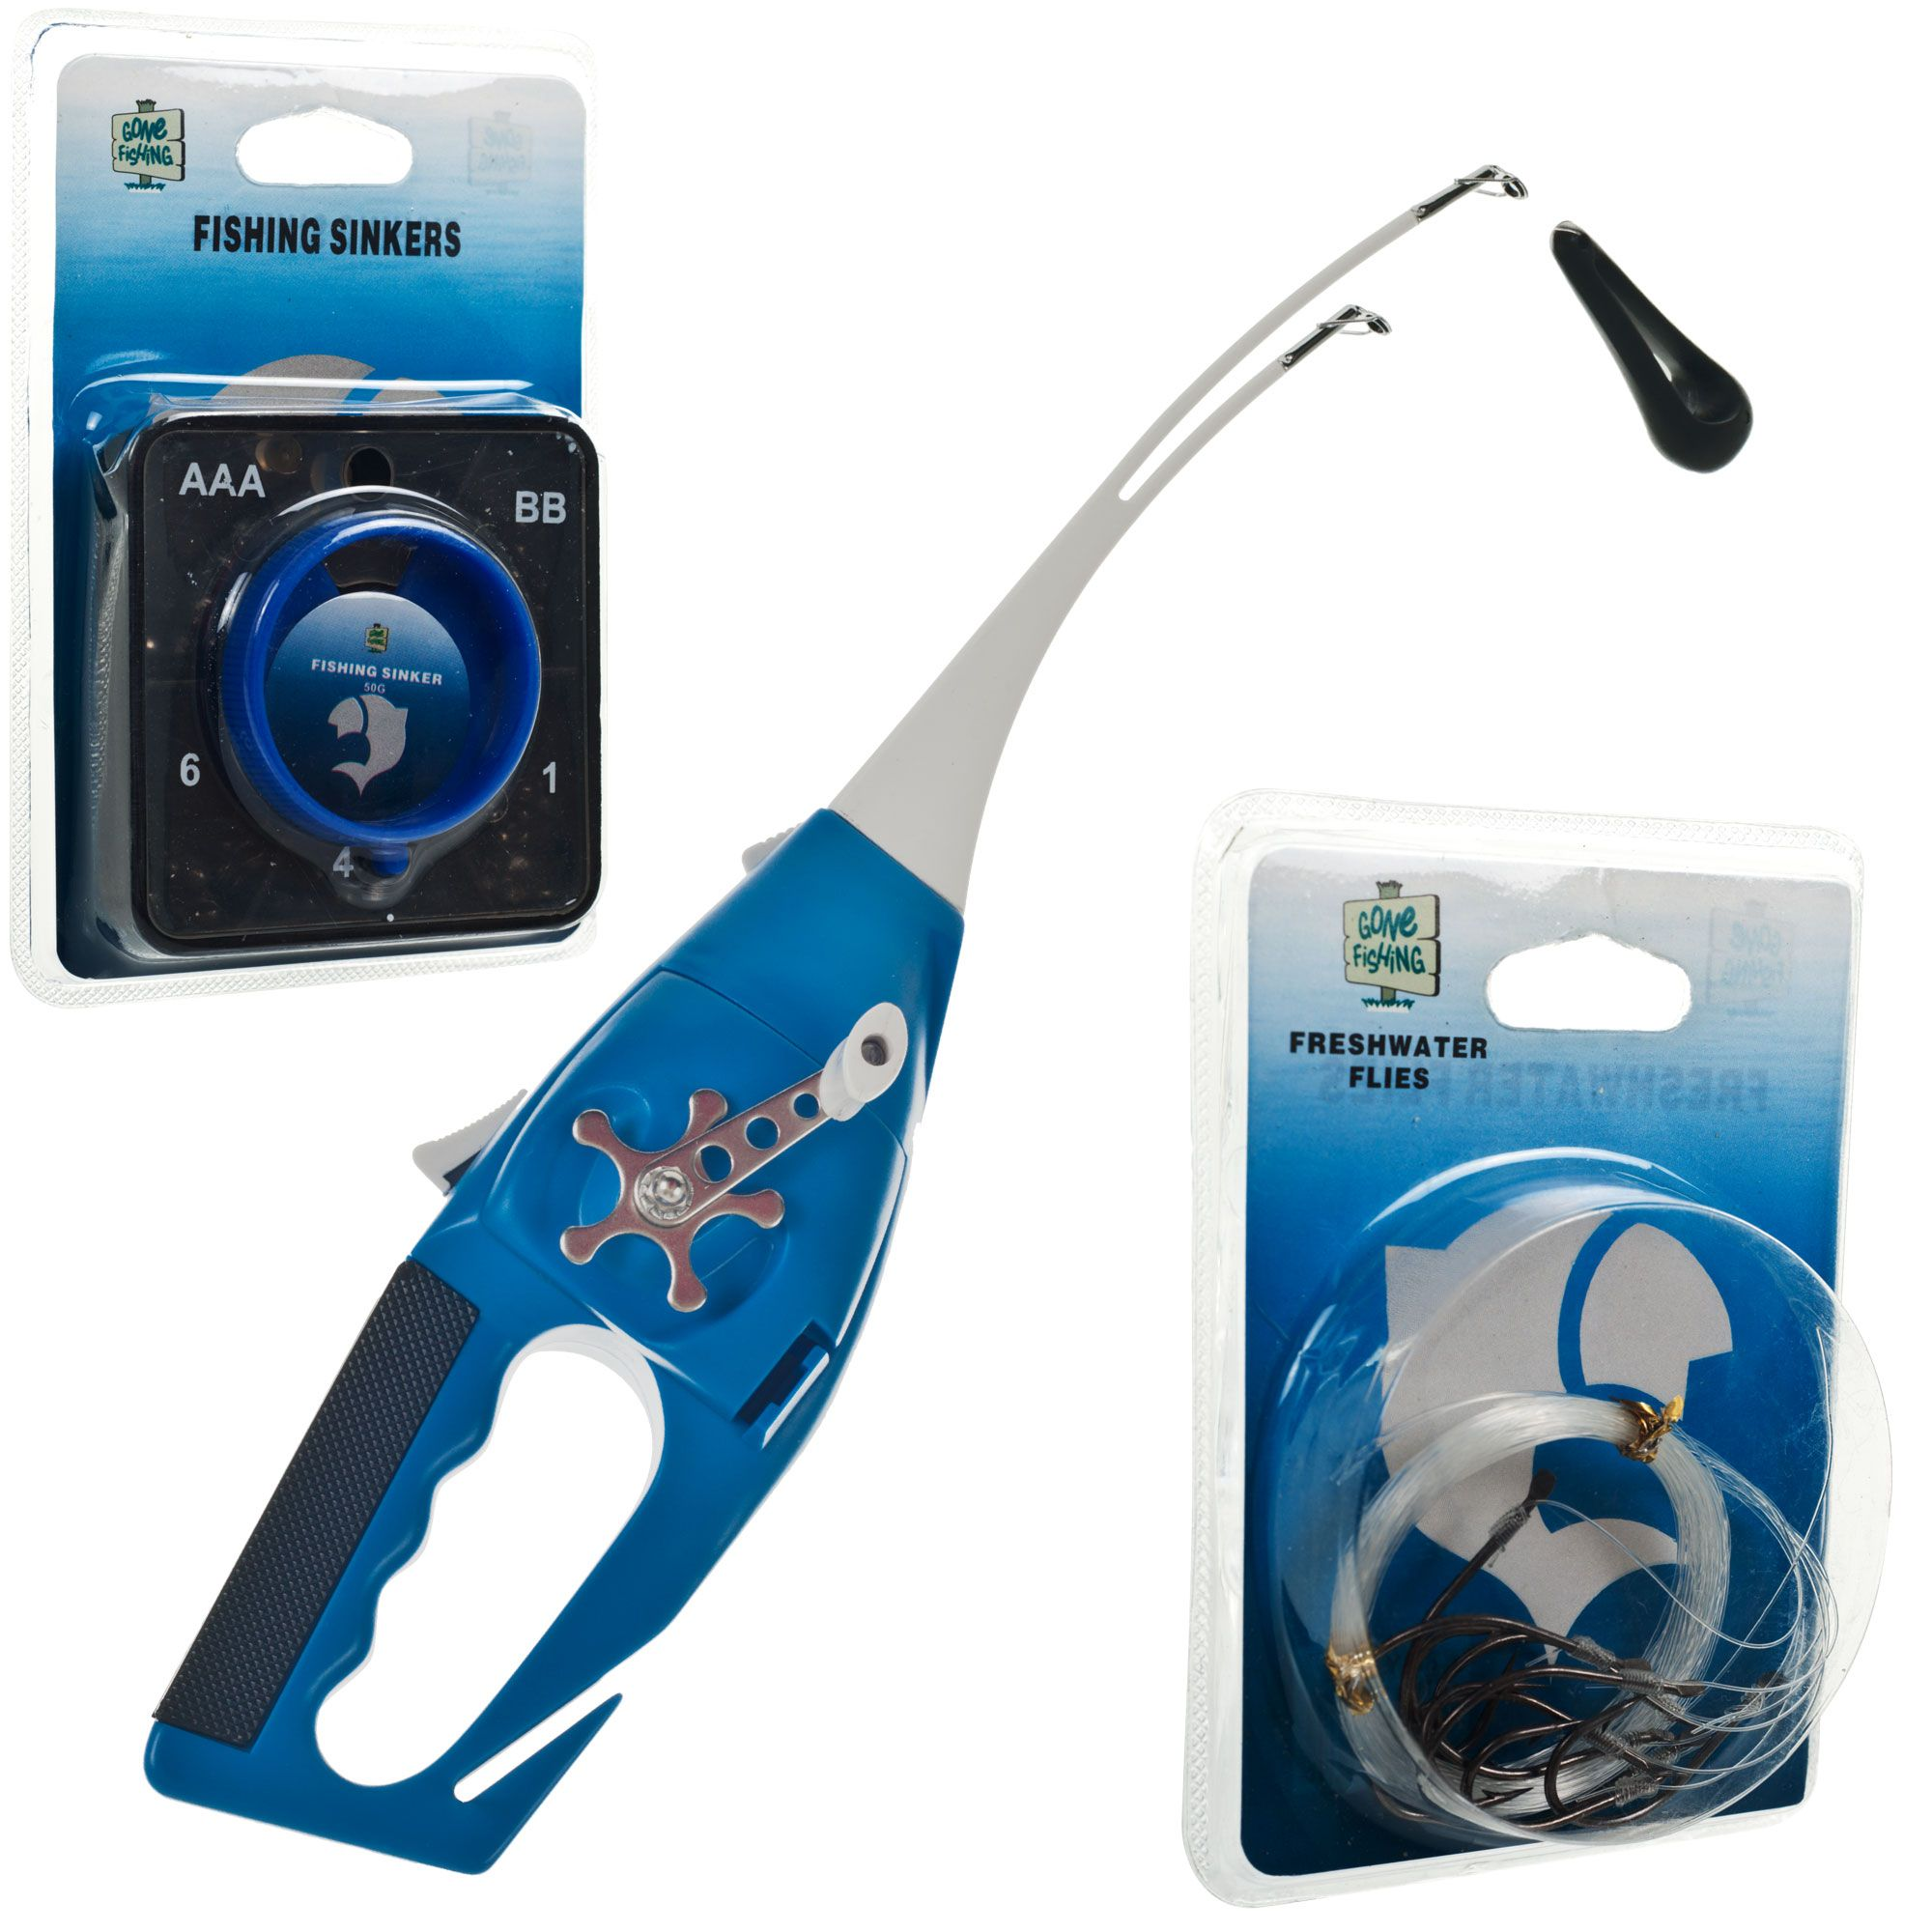 Trademark  Pocket Fisherman Fishing Kit